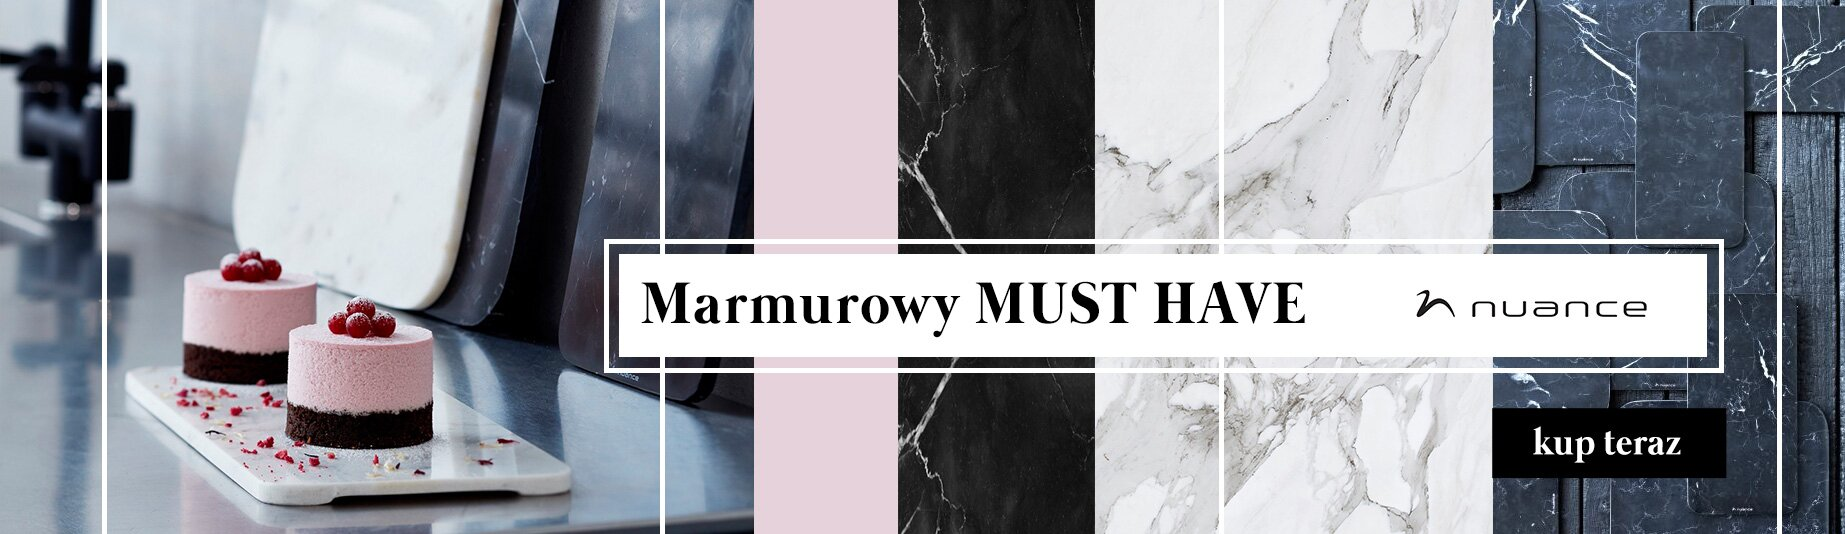 marmurowy must have